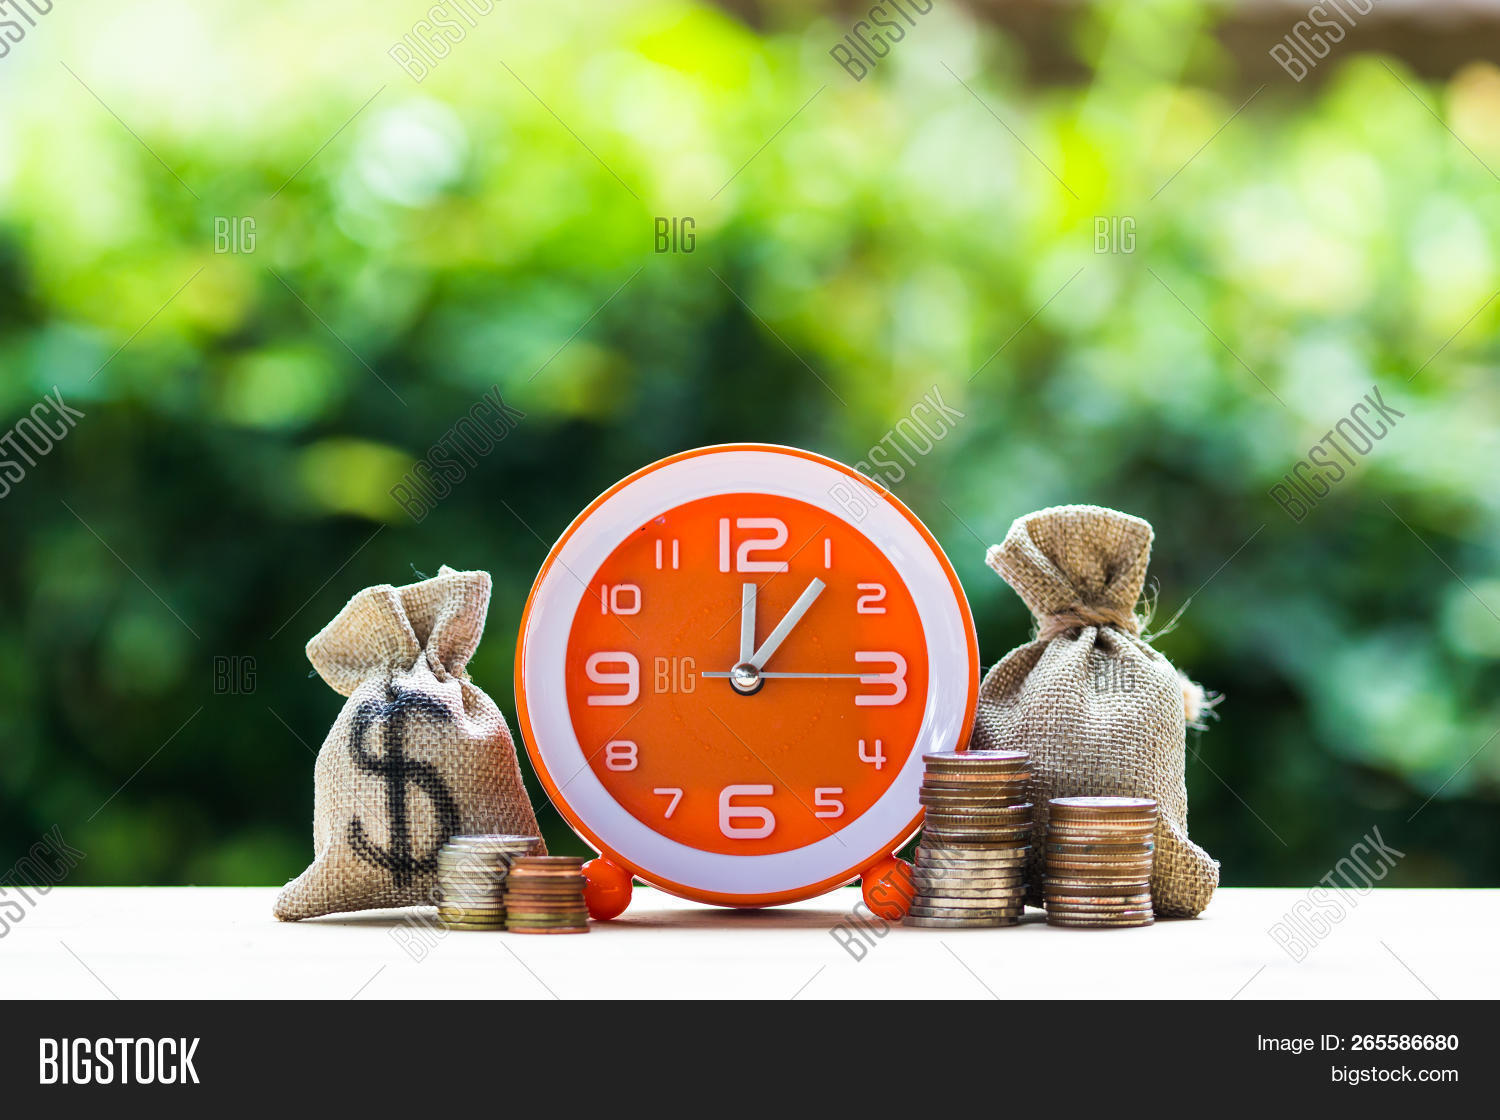 Money Savings, Investment, Growing Concept : Stacking Growing Coins, Money Bags And Orange Clock On